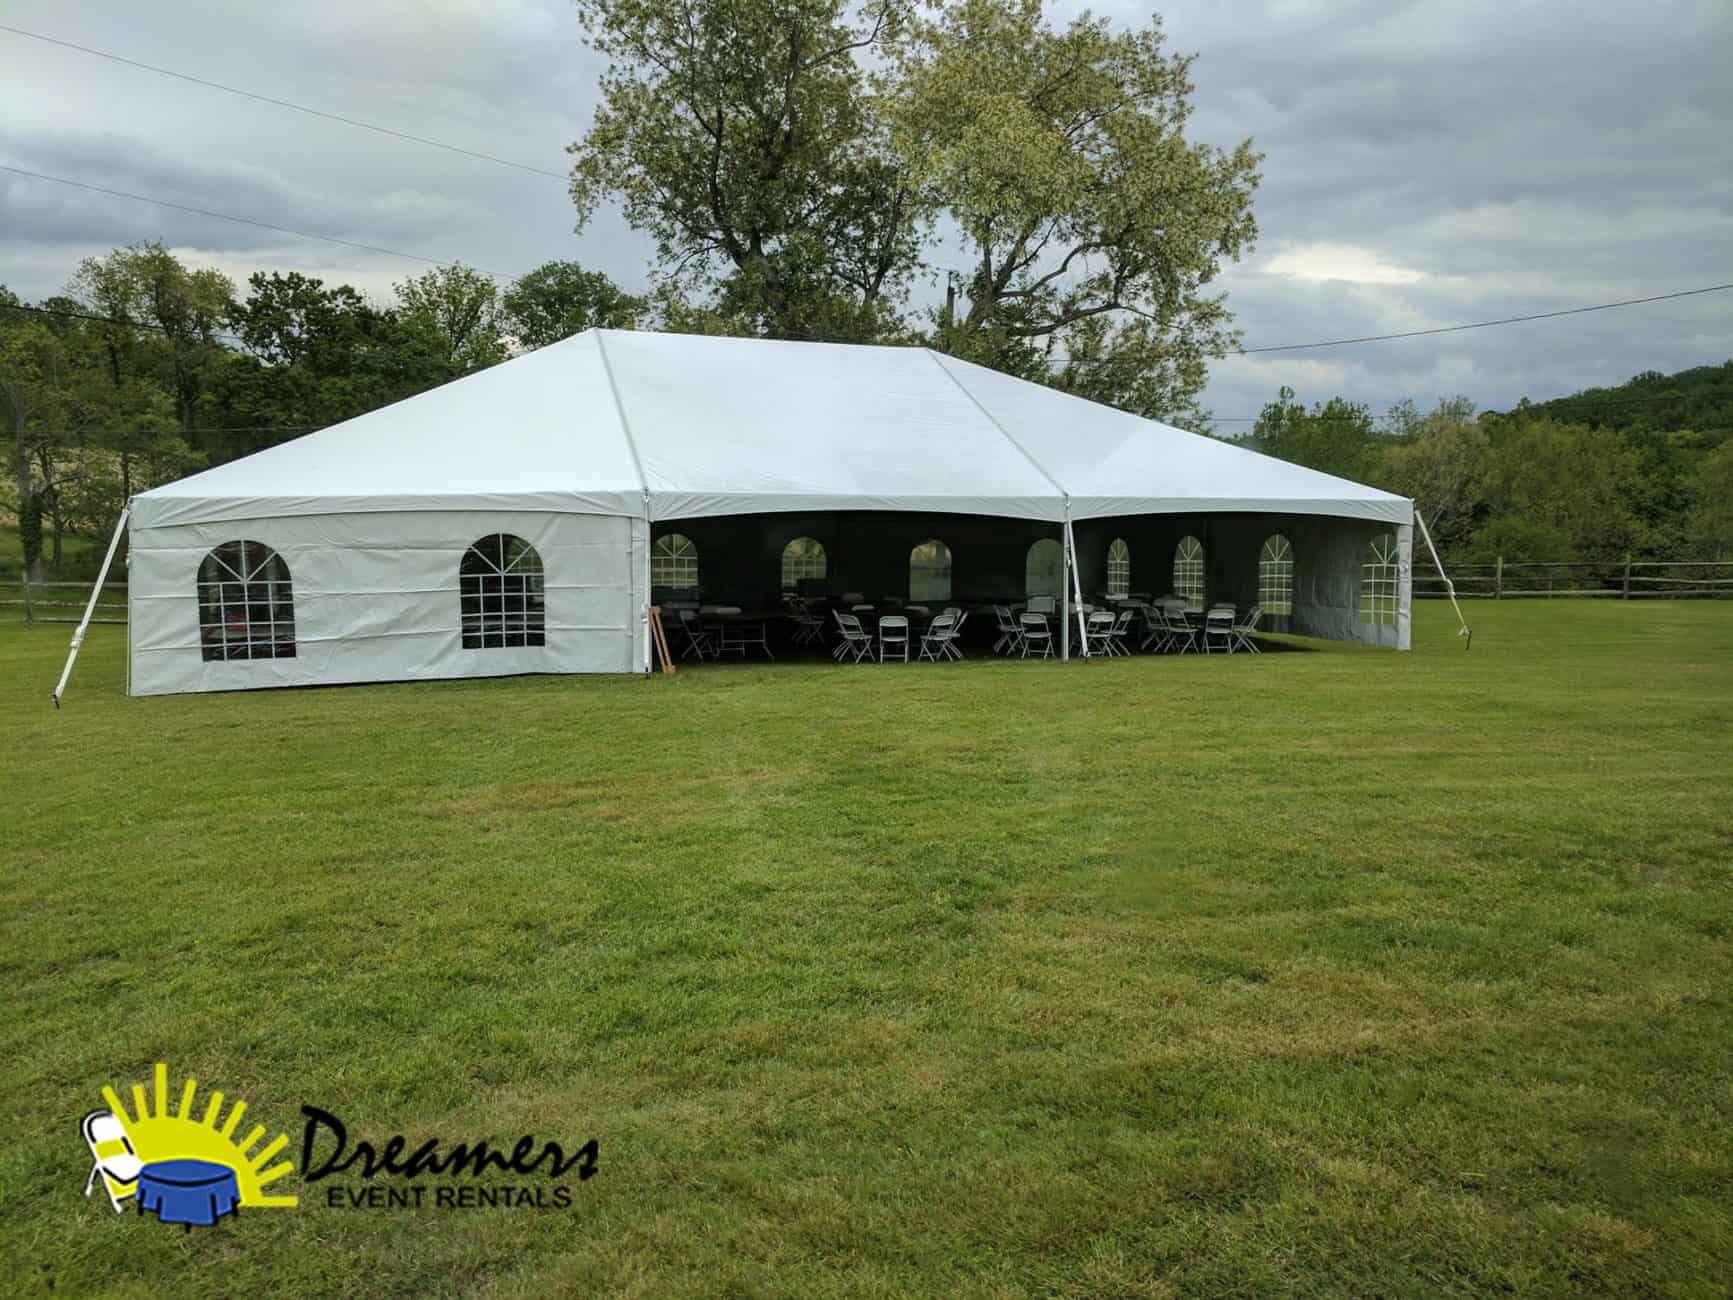 40 x 60 Frame Tent Installed On Grass